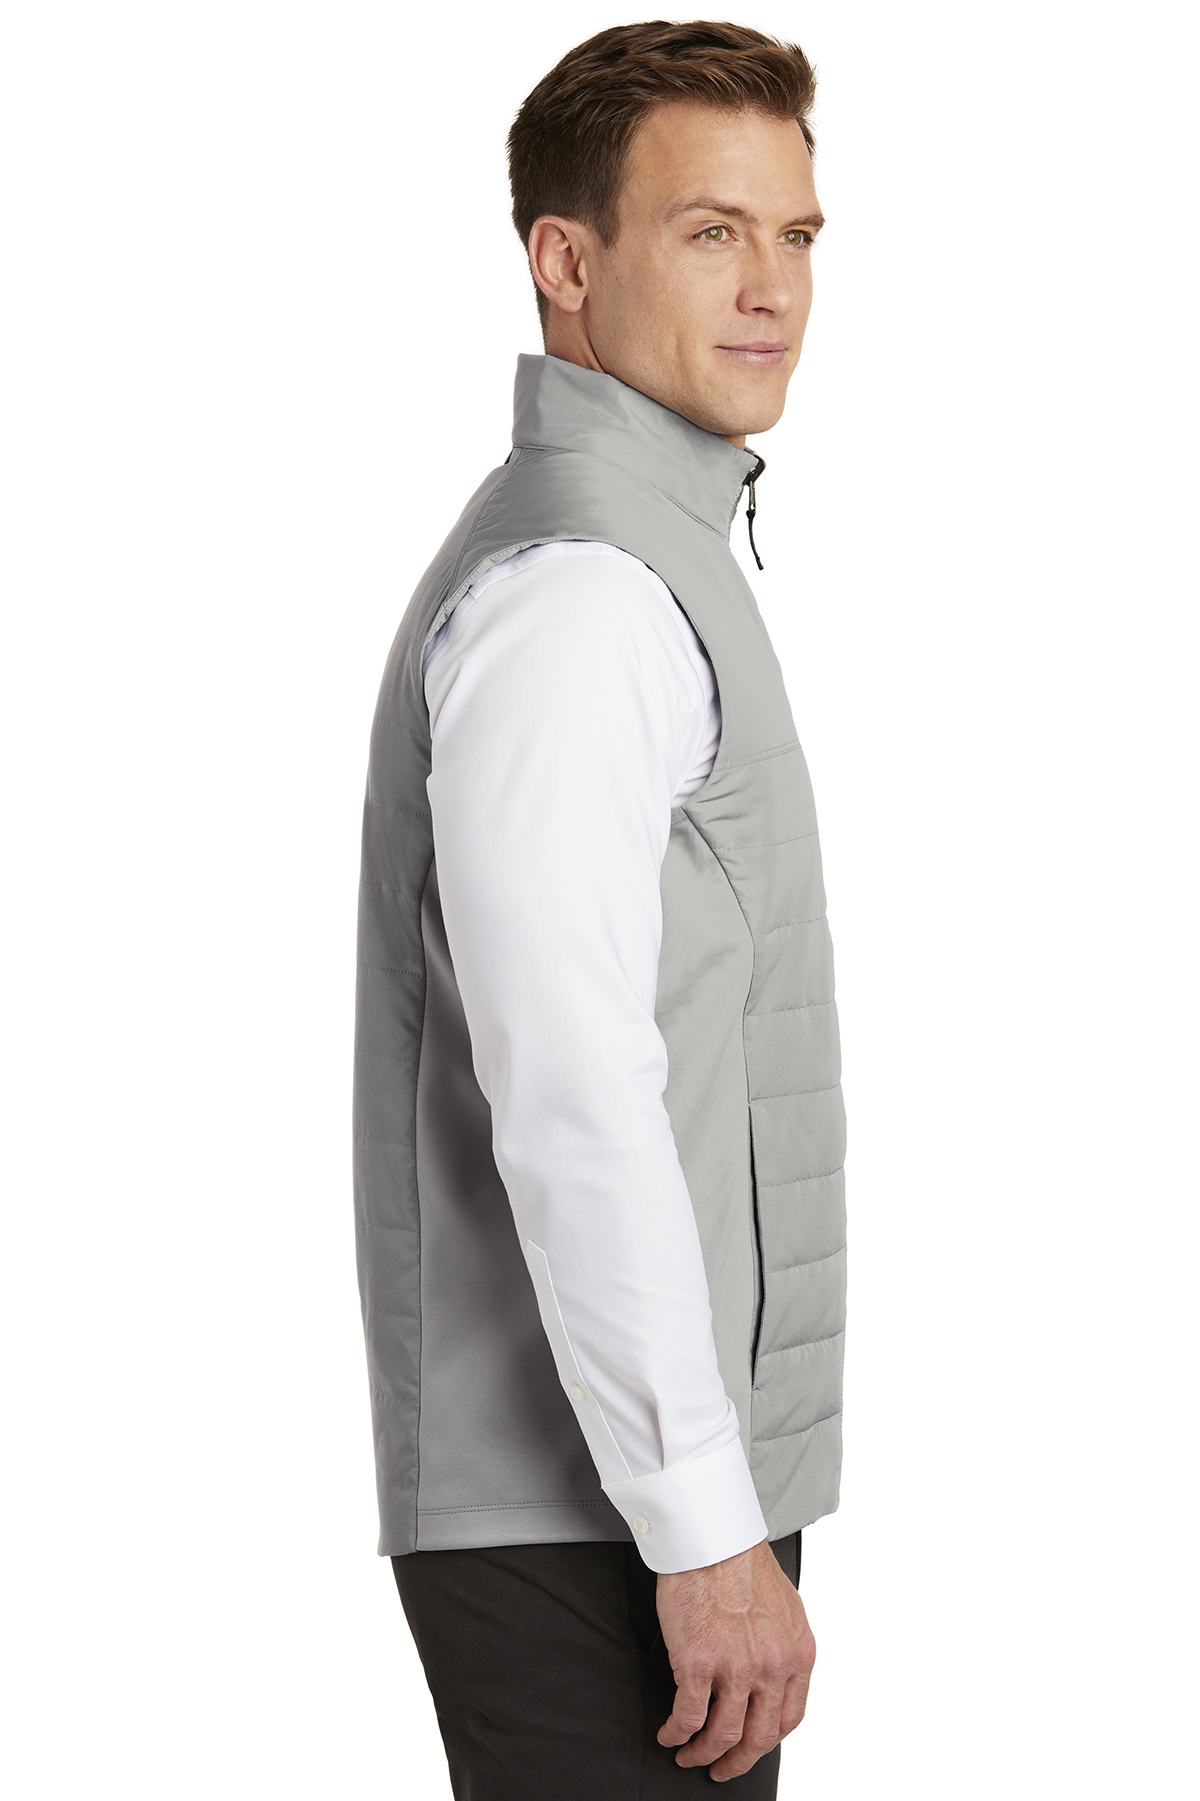 Sanmar Insulated Outerwear Authority Collective Vest ® Port tqYFTwRx